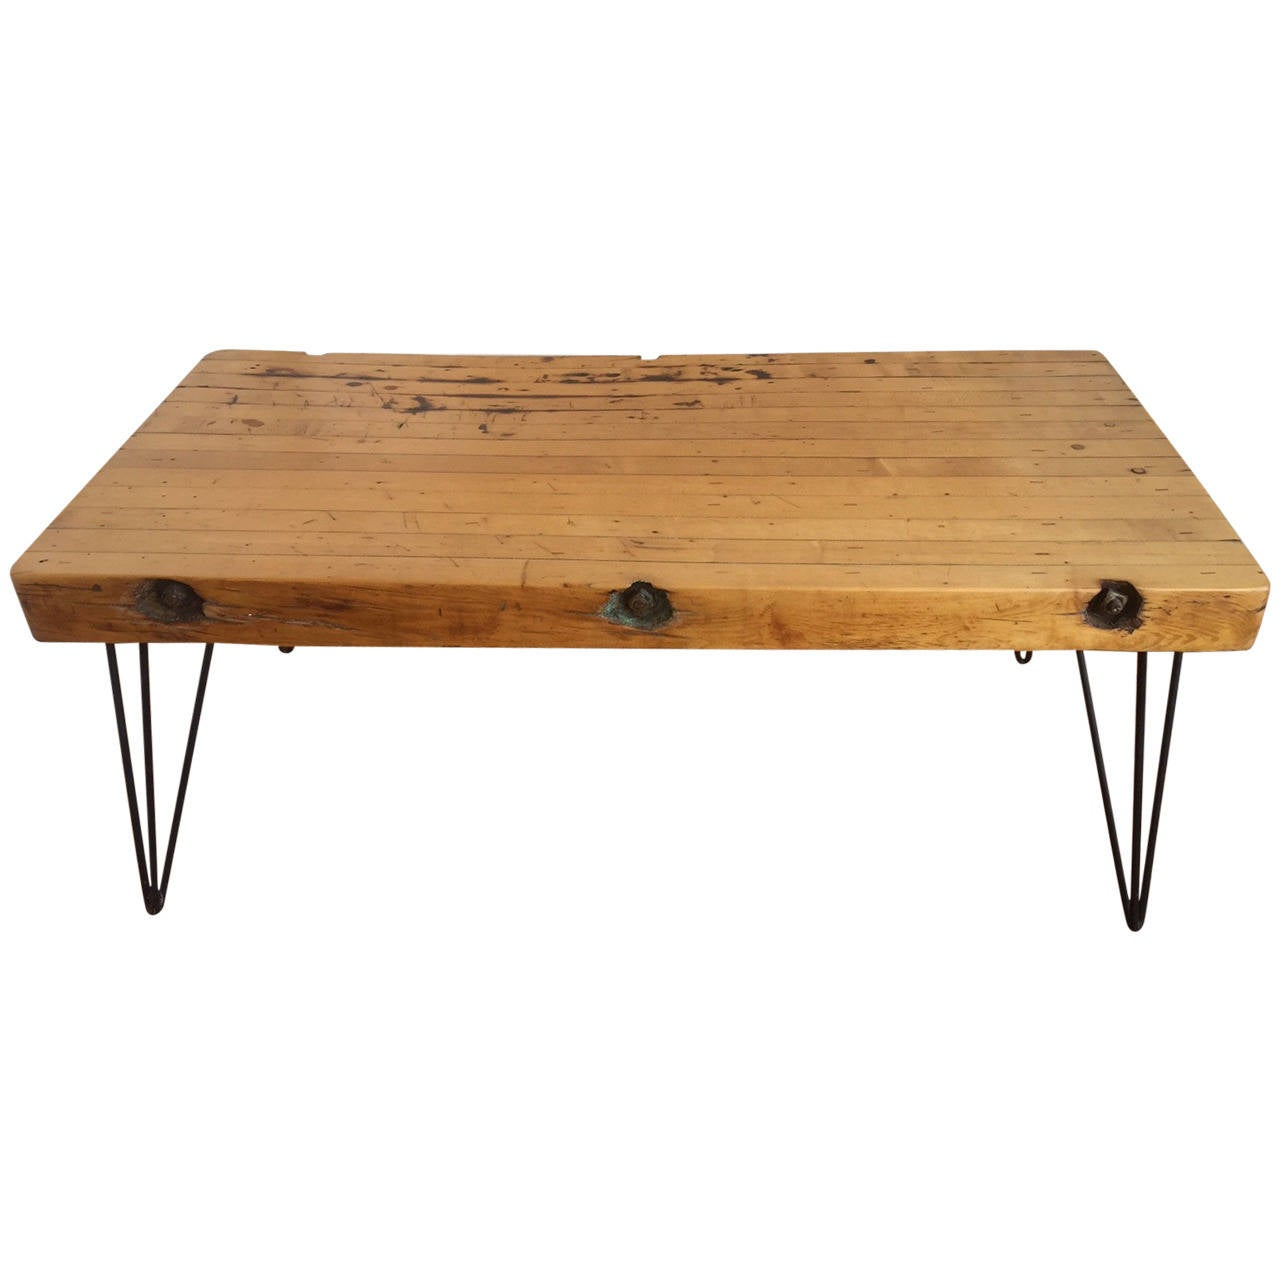 Handmade reclaimed butcher block rustic coffee table at 1stdibs Coffee tables rustic